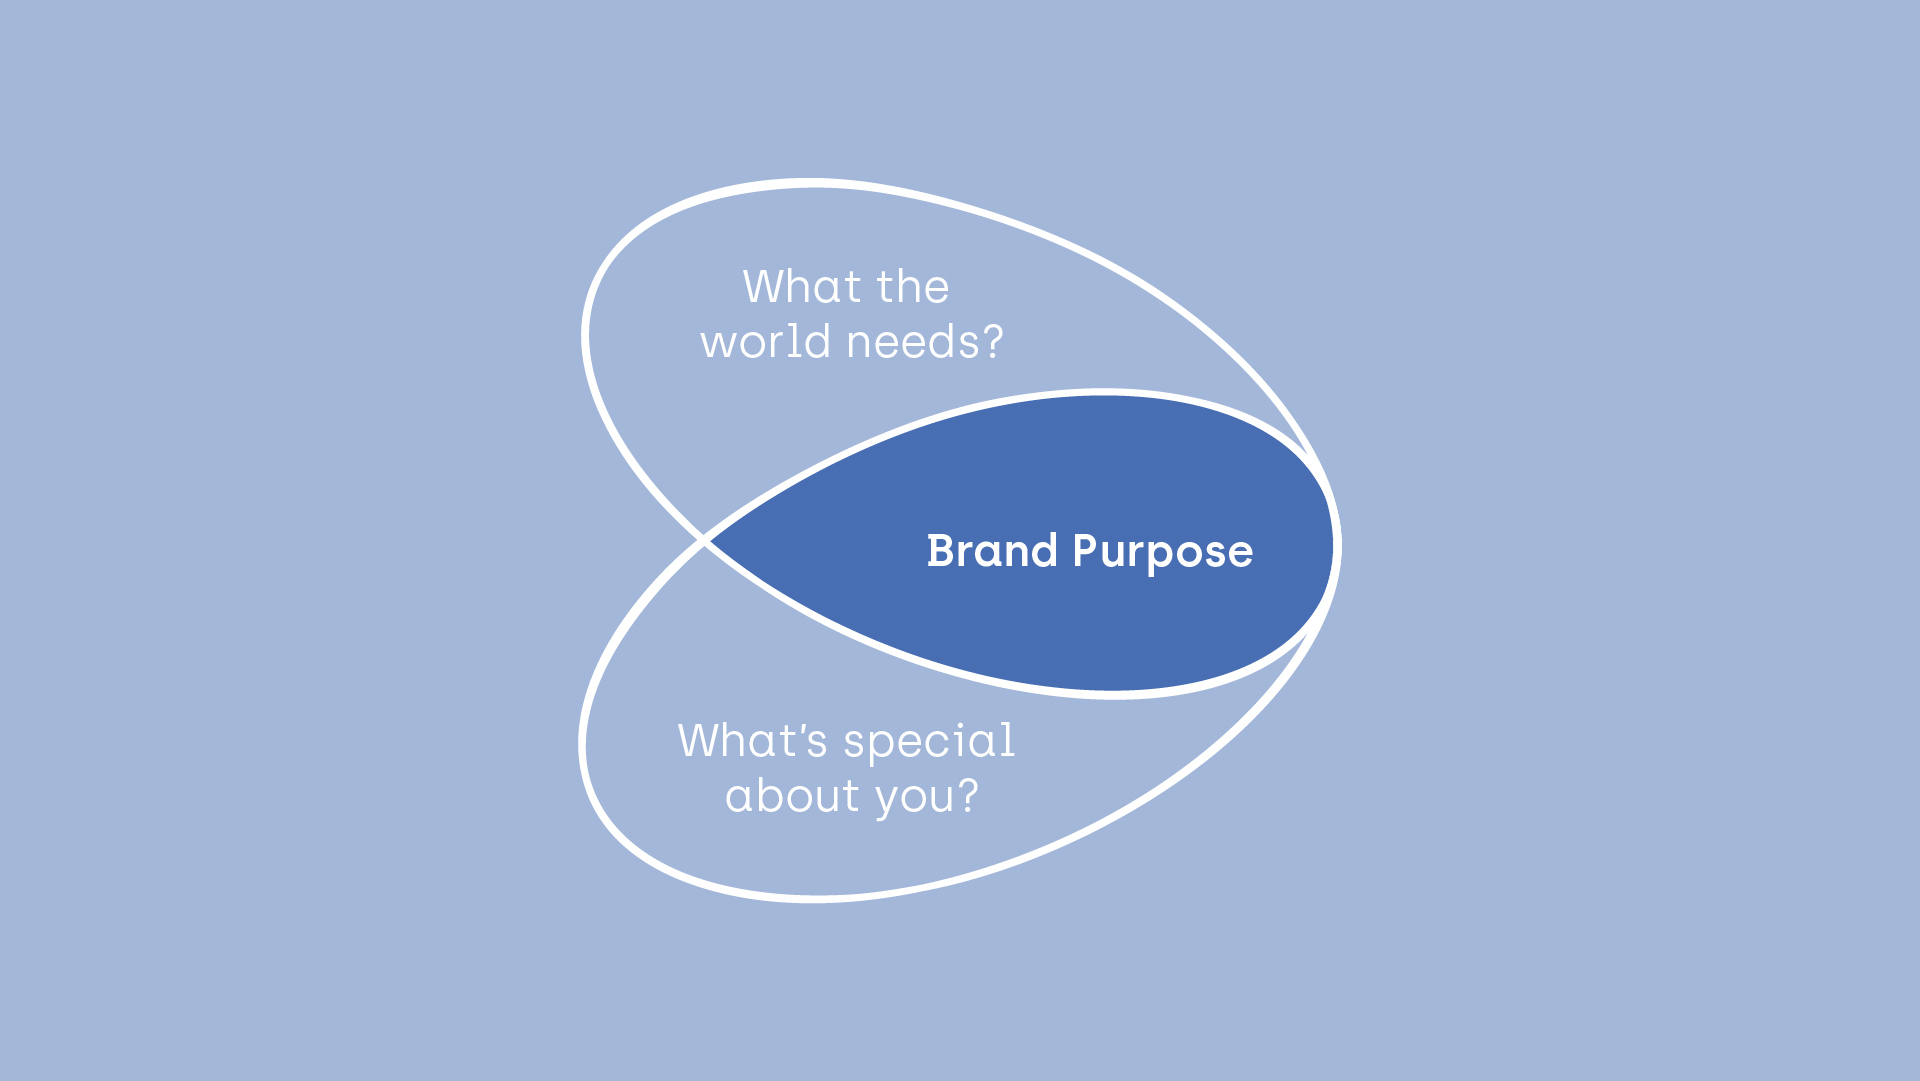 Brand Butterfly - what the world needs, brand purpose, what's special about you. Author: Klara Siewierska